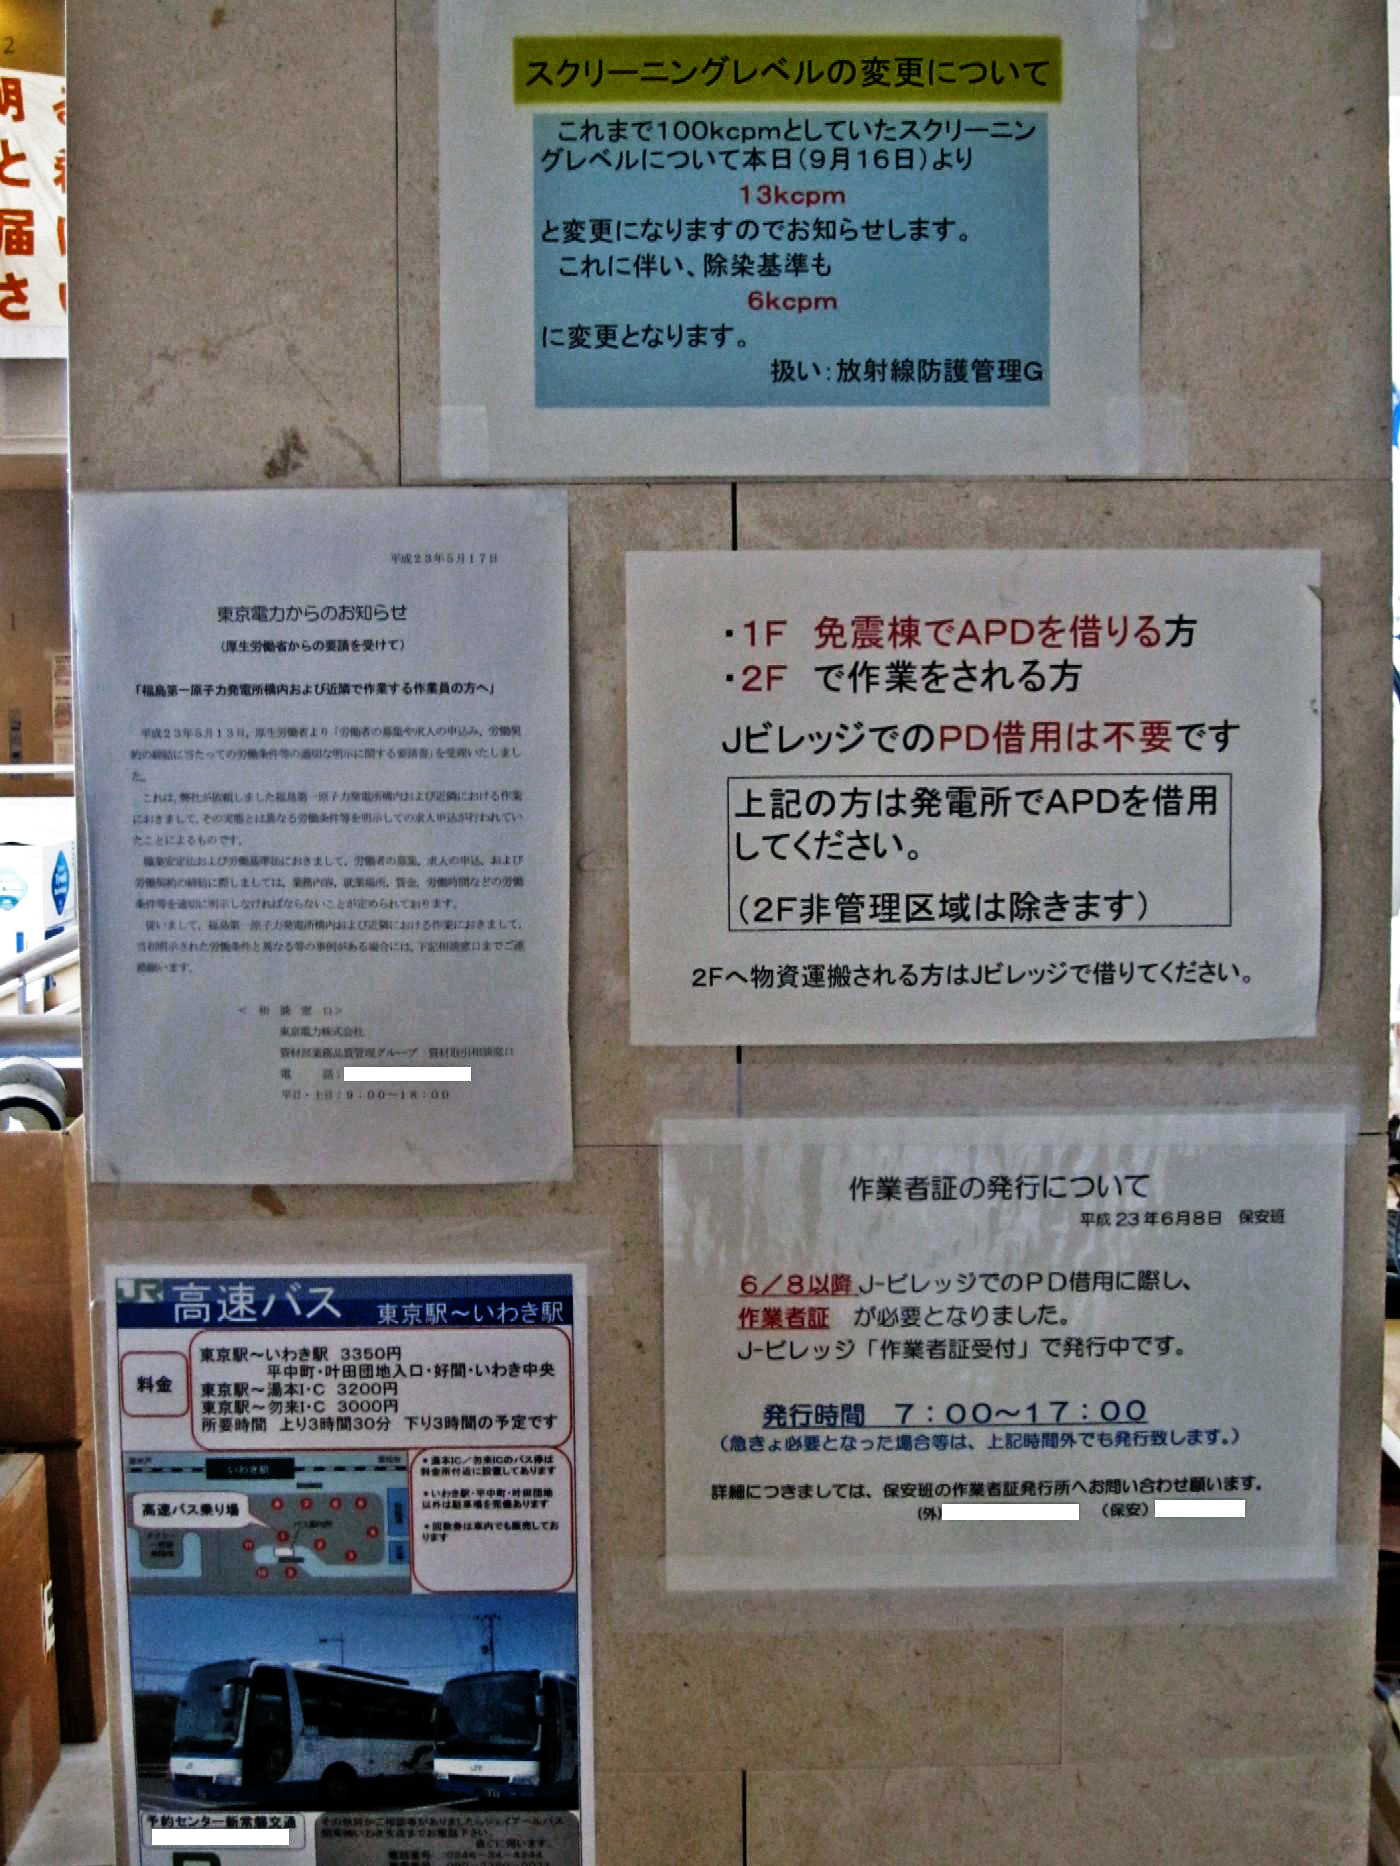 Notices inside J Village (3) Notices inside J Village (3)